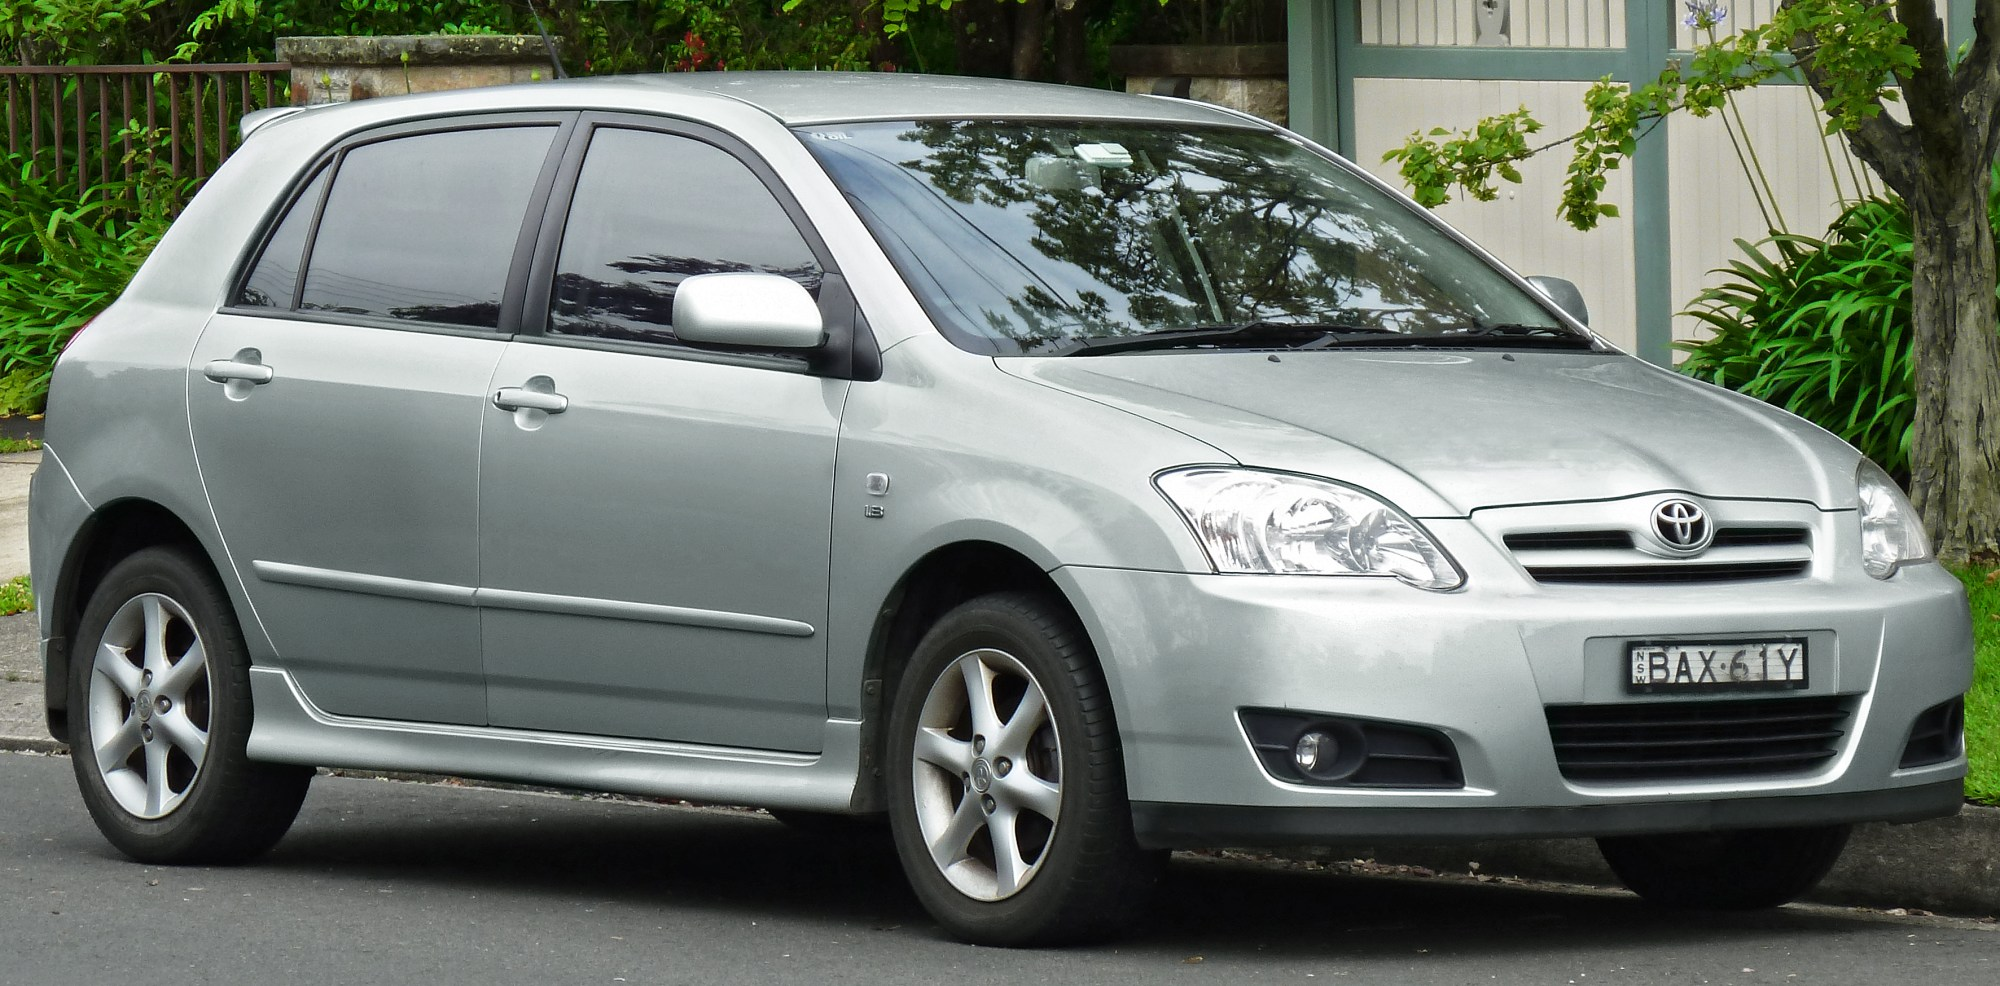 hight resolution of  toyota allex pictures information and specs auto database com